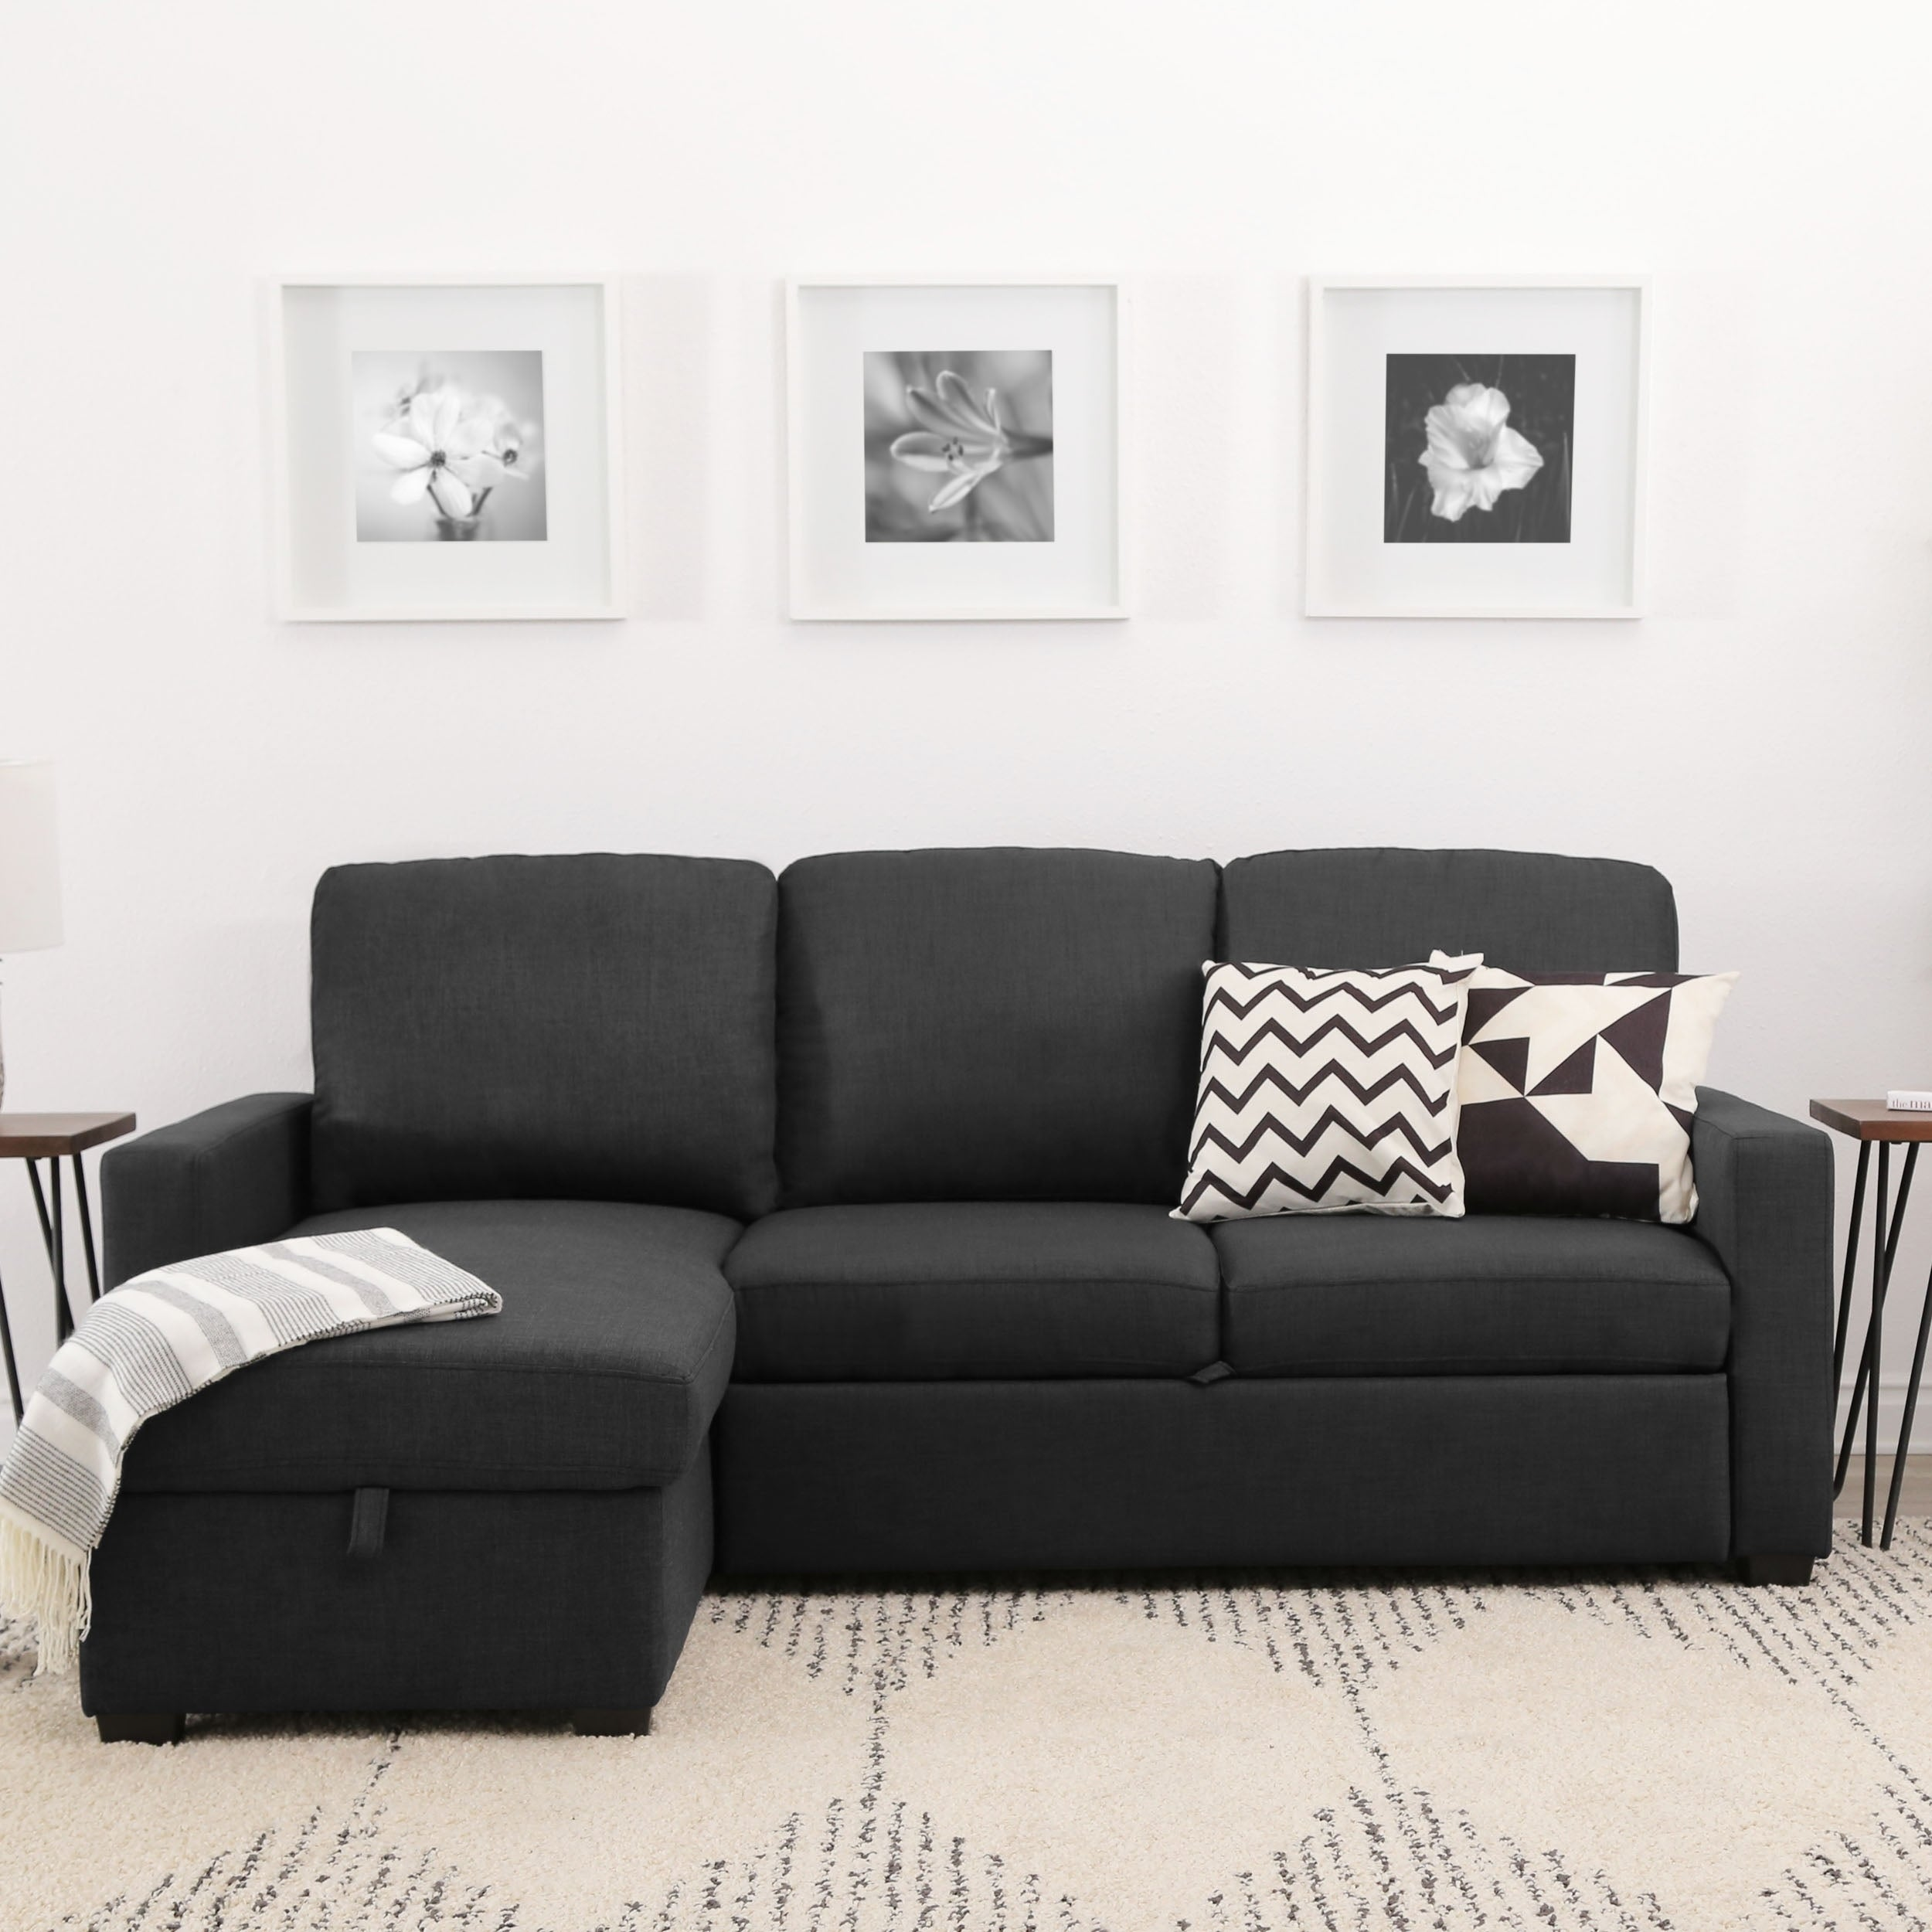 Abbyson Newport Dark Grey Upholstered Sleeper Sectional With Storage Free Shipping Today 11769165